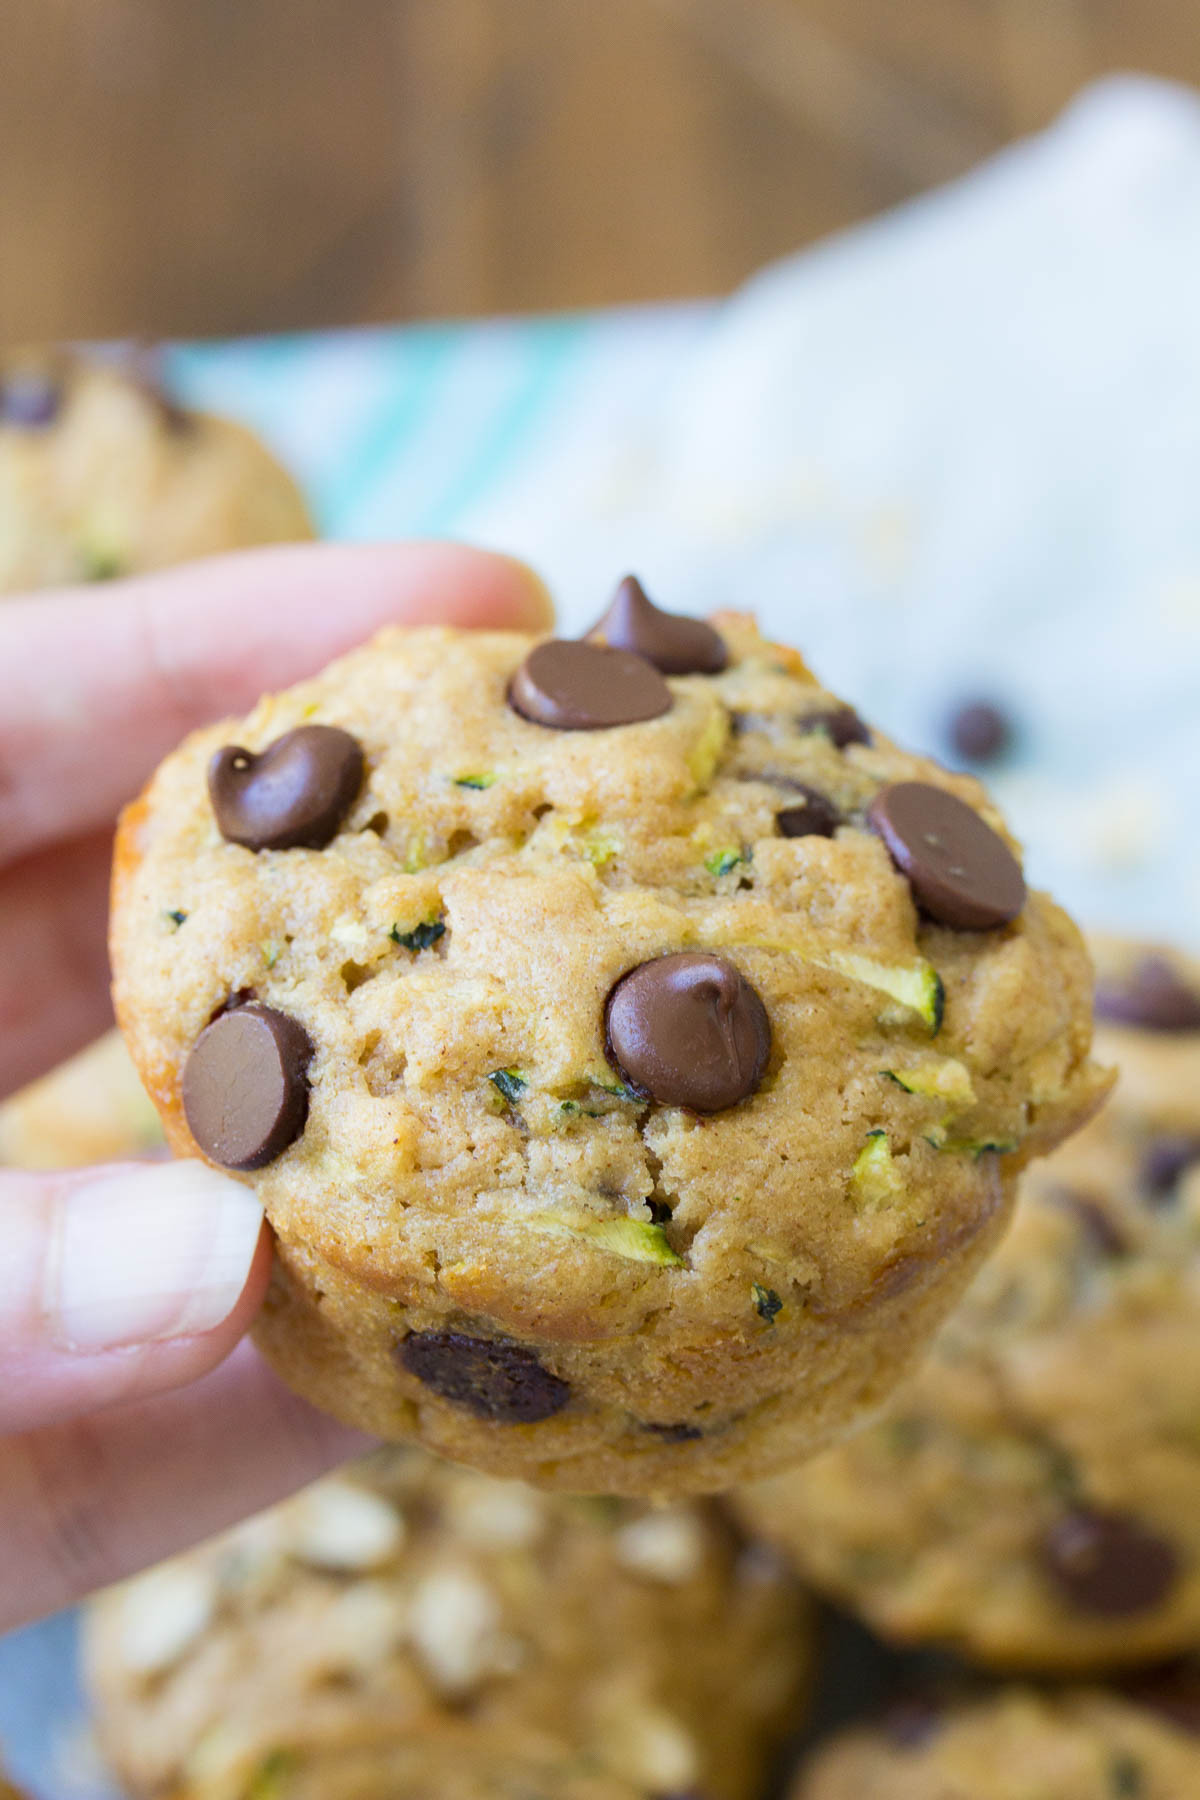 Zucchini Muffins Healthy  Healthy Zucchini Muffins Chocolate Chip or Oat